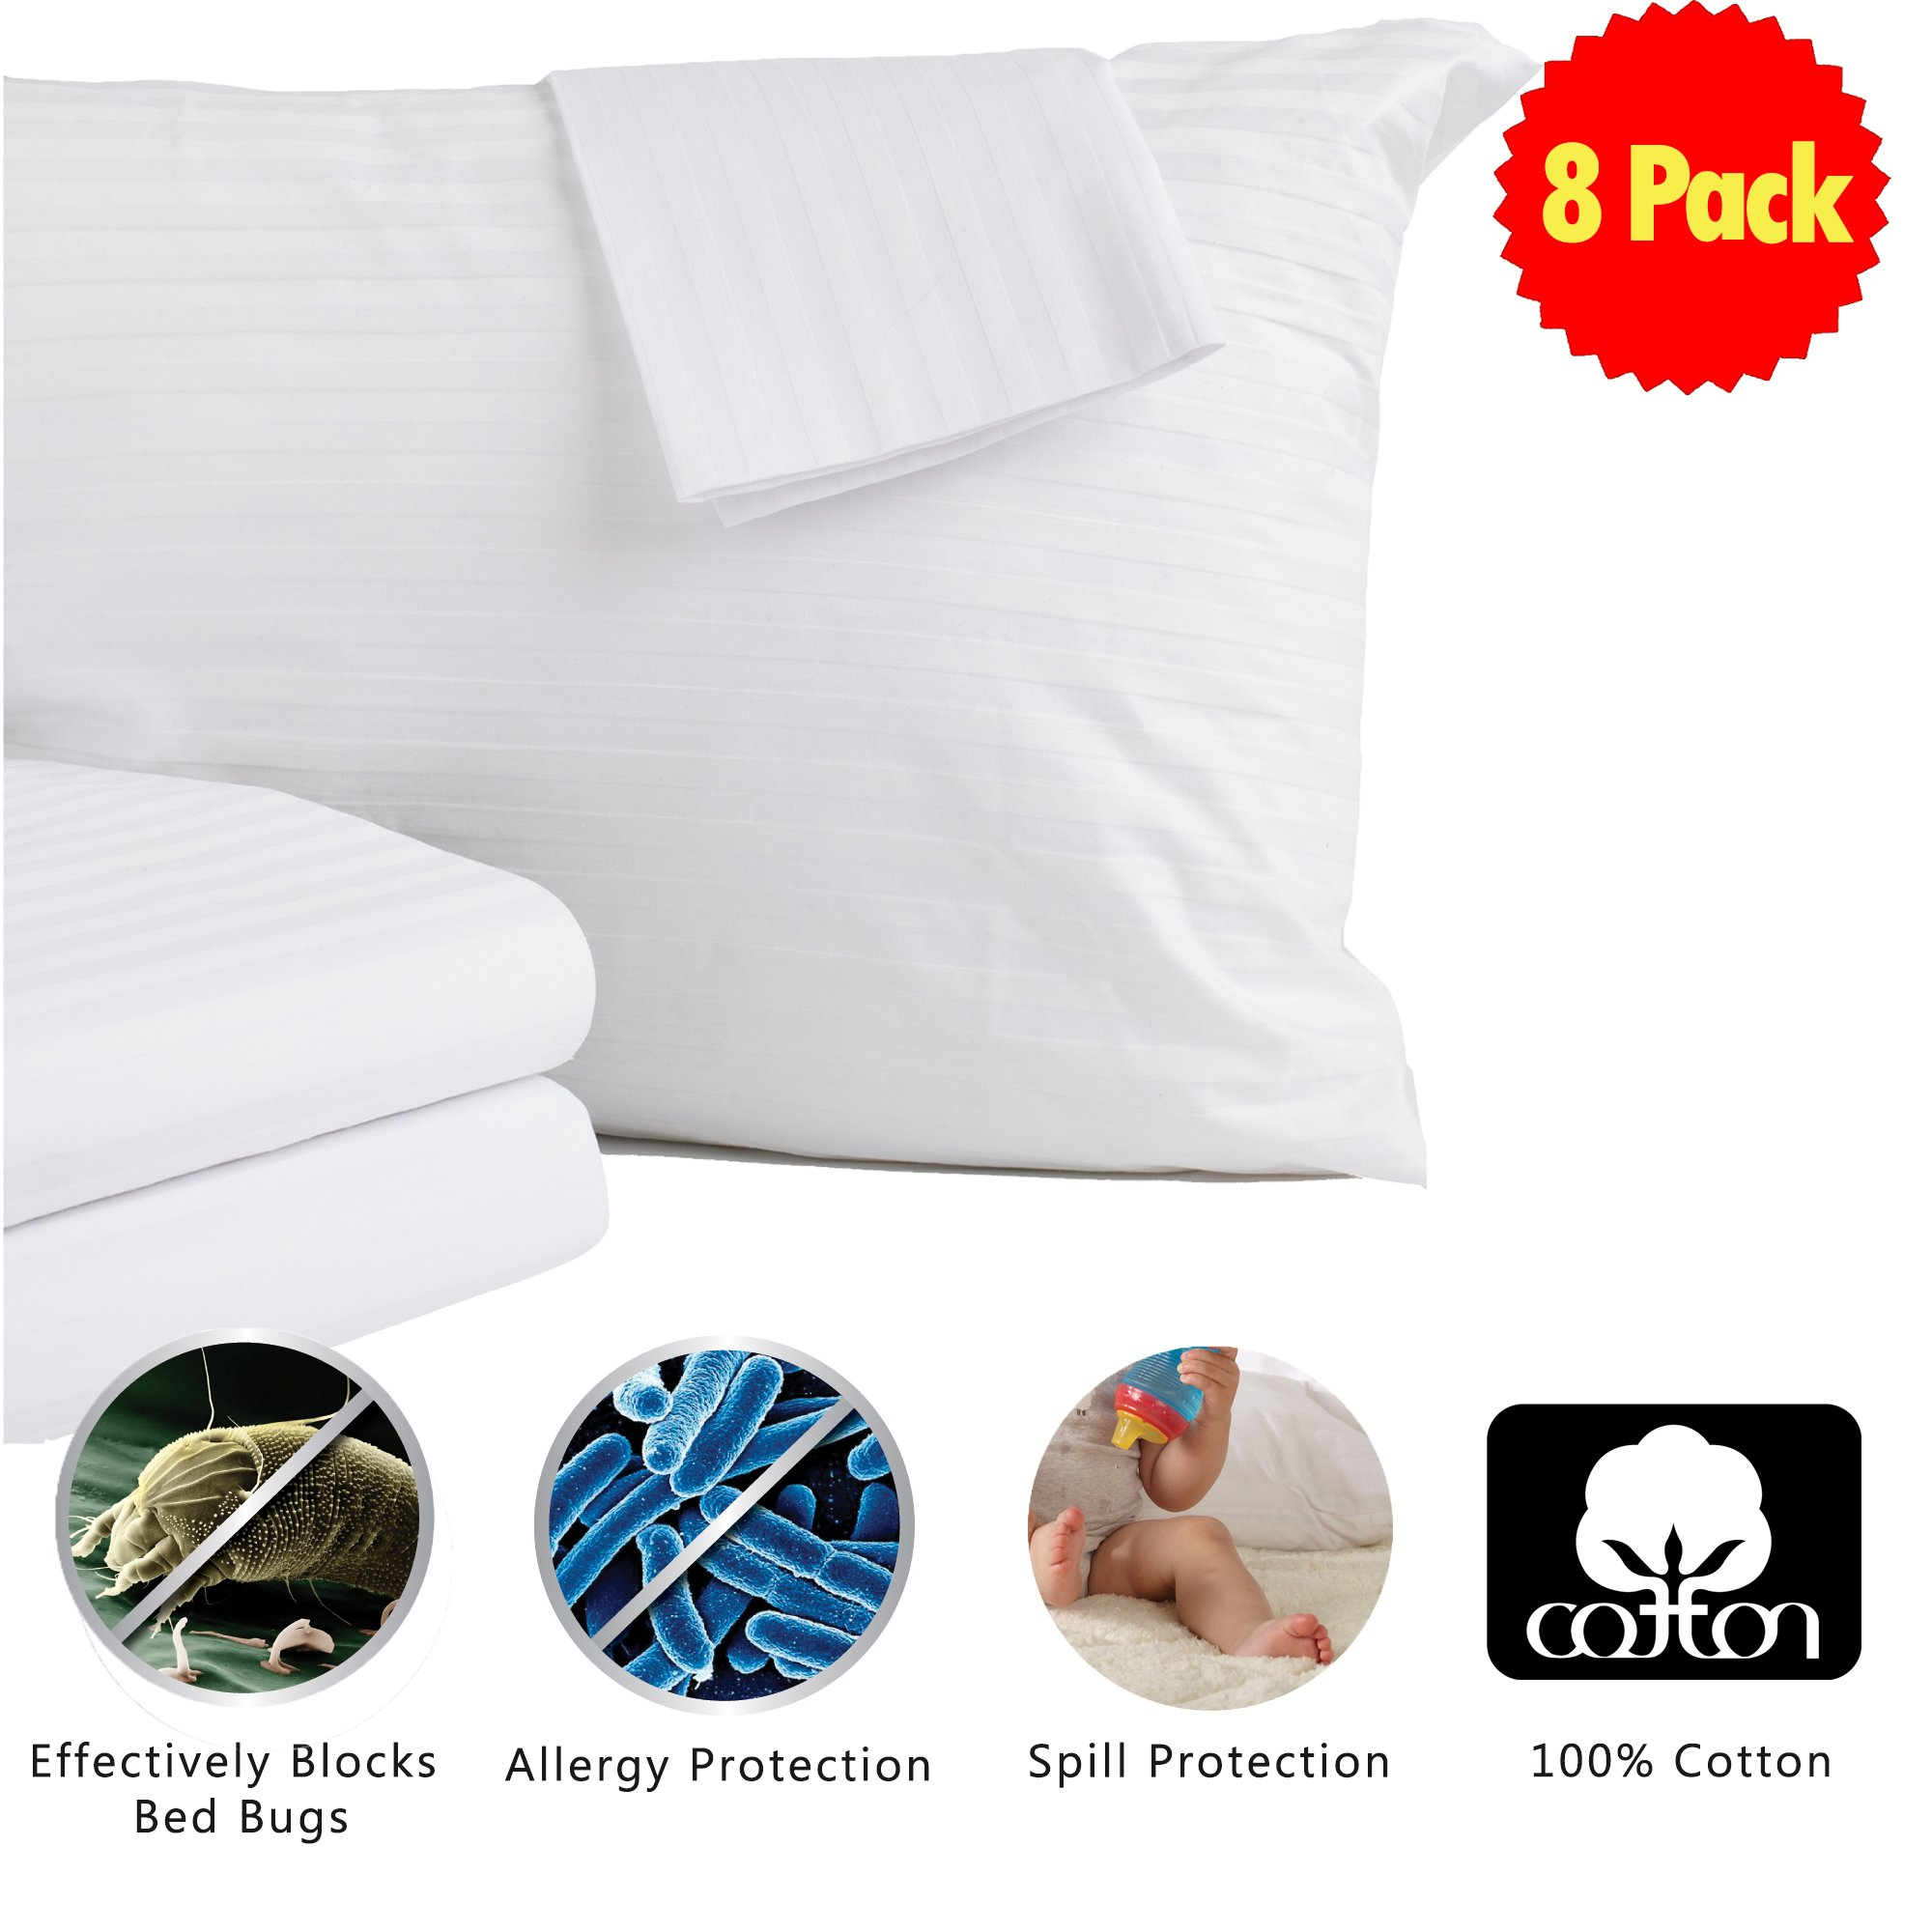 Home Fashion Designs 8-Pack 100% Cotton Professional Grade Allergy Control, Bed Bug & Dust Mite Resistant Pillow Protectors Zippered Premium Encasement & Pillow Covers (Jumbo/Queen)